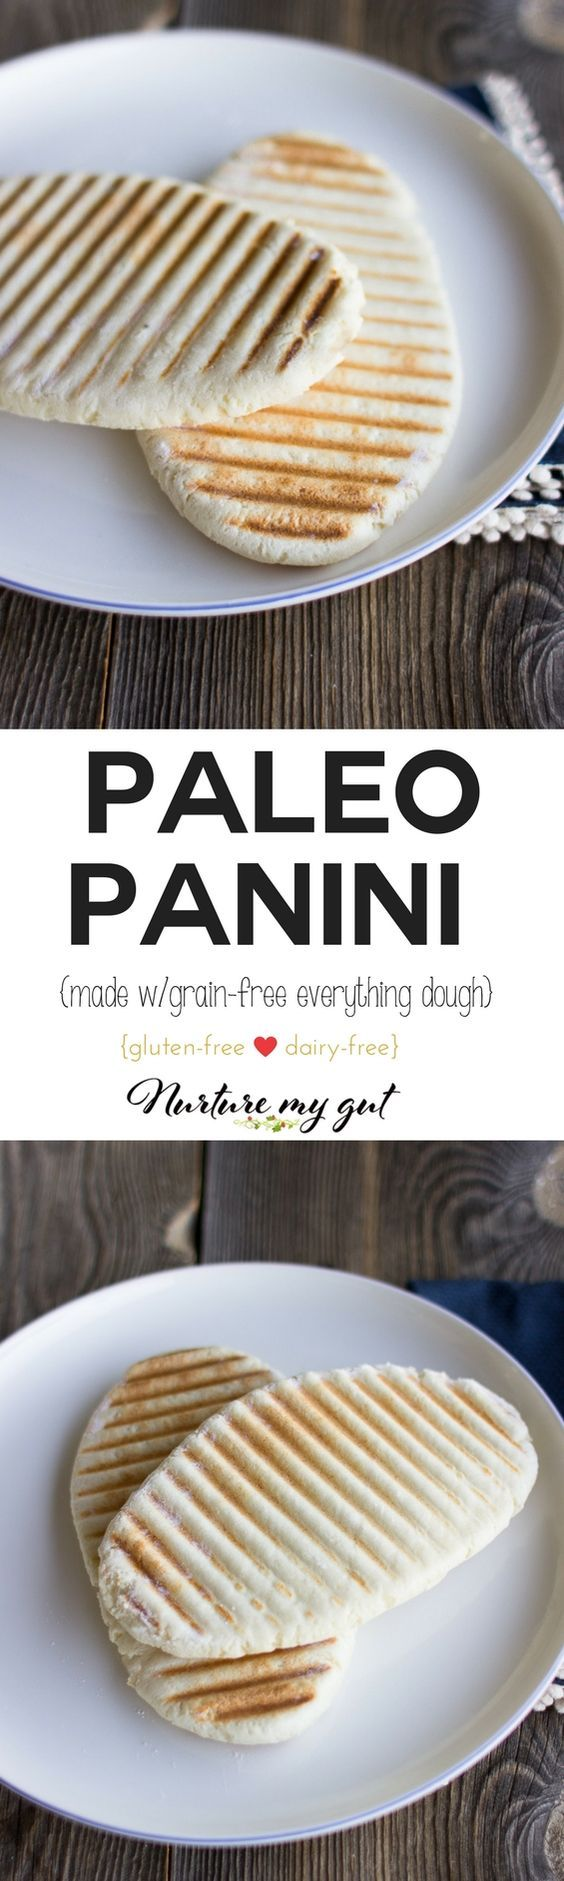 Paleo Panini Bread that is soft, flexible and tastes just like Naan Bread.  Make sandwiches, serve with stews, and dip into a blend of olive oil and balsamic. Grain free, gluten free and dairy free.